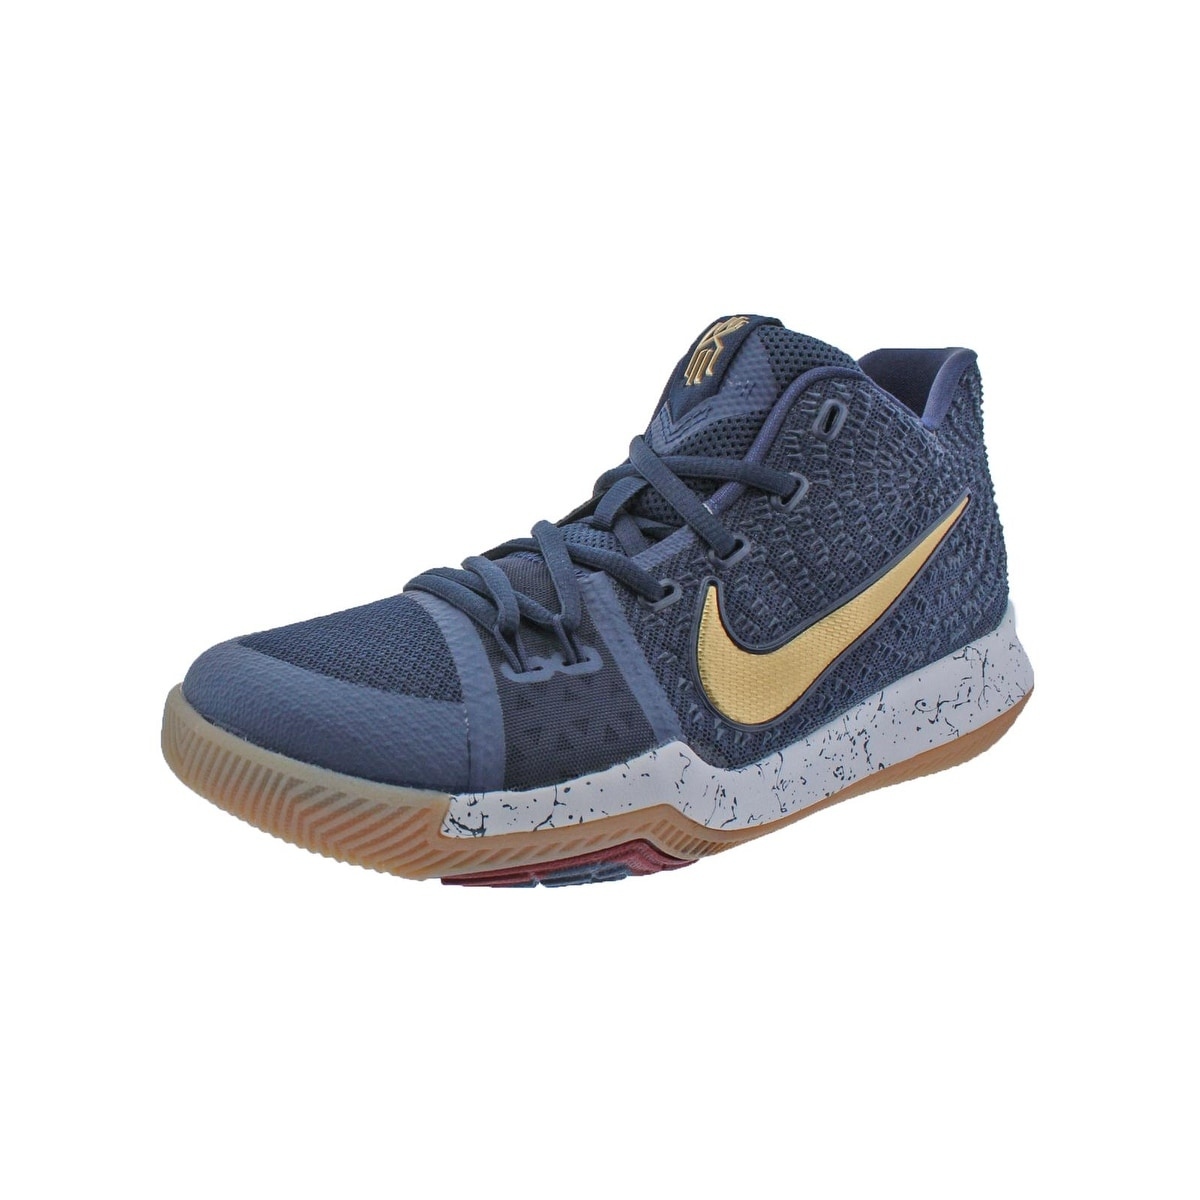 9106df1b840 Shop Nike Boys Kyrie 3 Basketball Shoes Colorblock Mids - Ships To Canada -  Overstock - 22025161